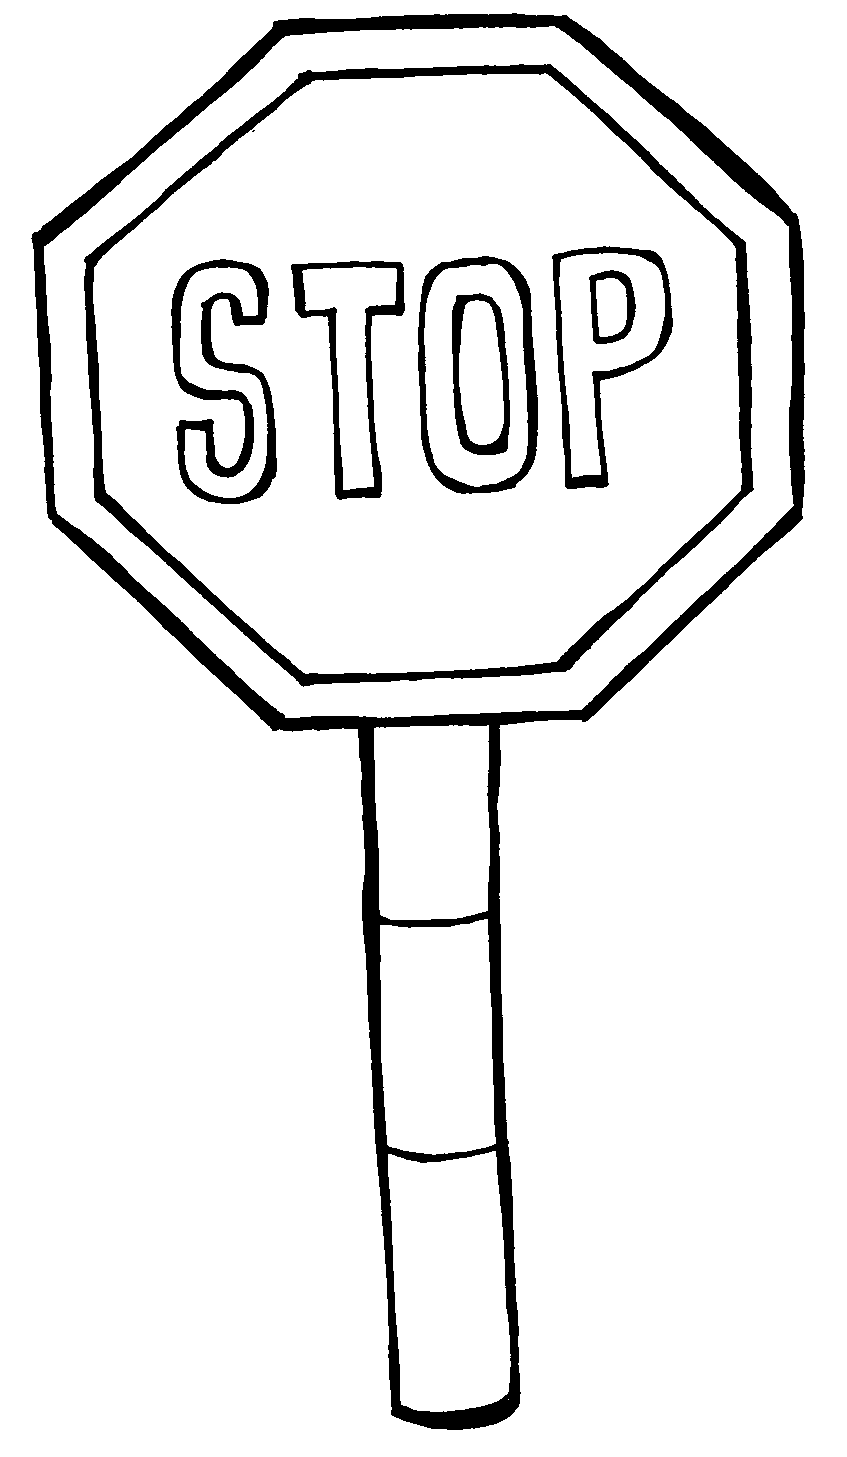 traffic signs coloring pages printable stop sign coloring page coloring home traffic signs coloring pages